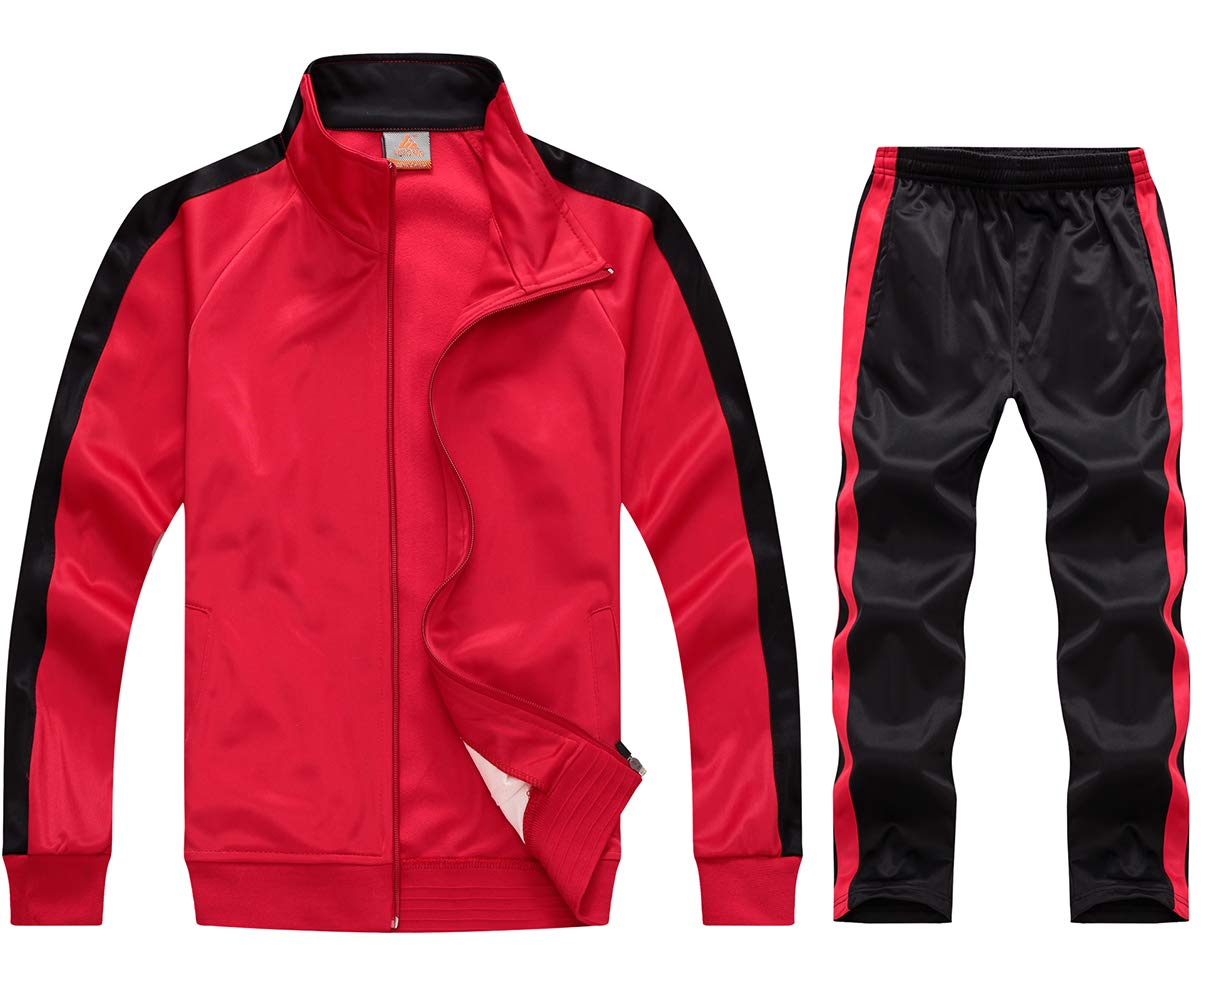 myglory77mall Running Jogging Tracksuit Jacket and Pants Warm Up Gym Wear 6801 Red L US(2XL Asian) by myglory77mall